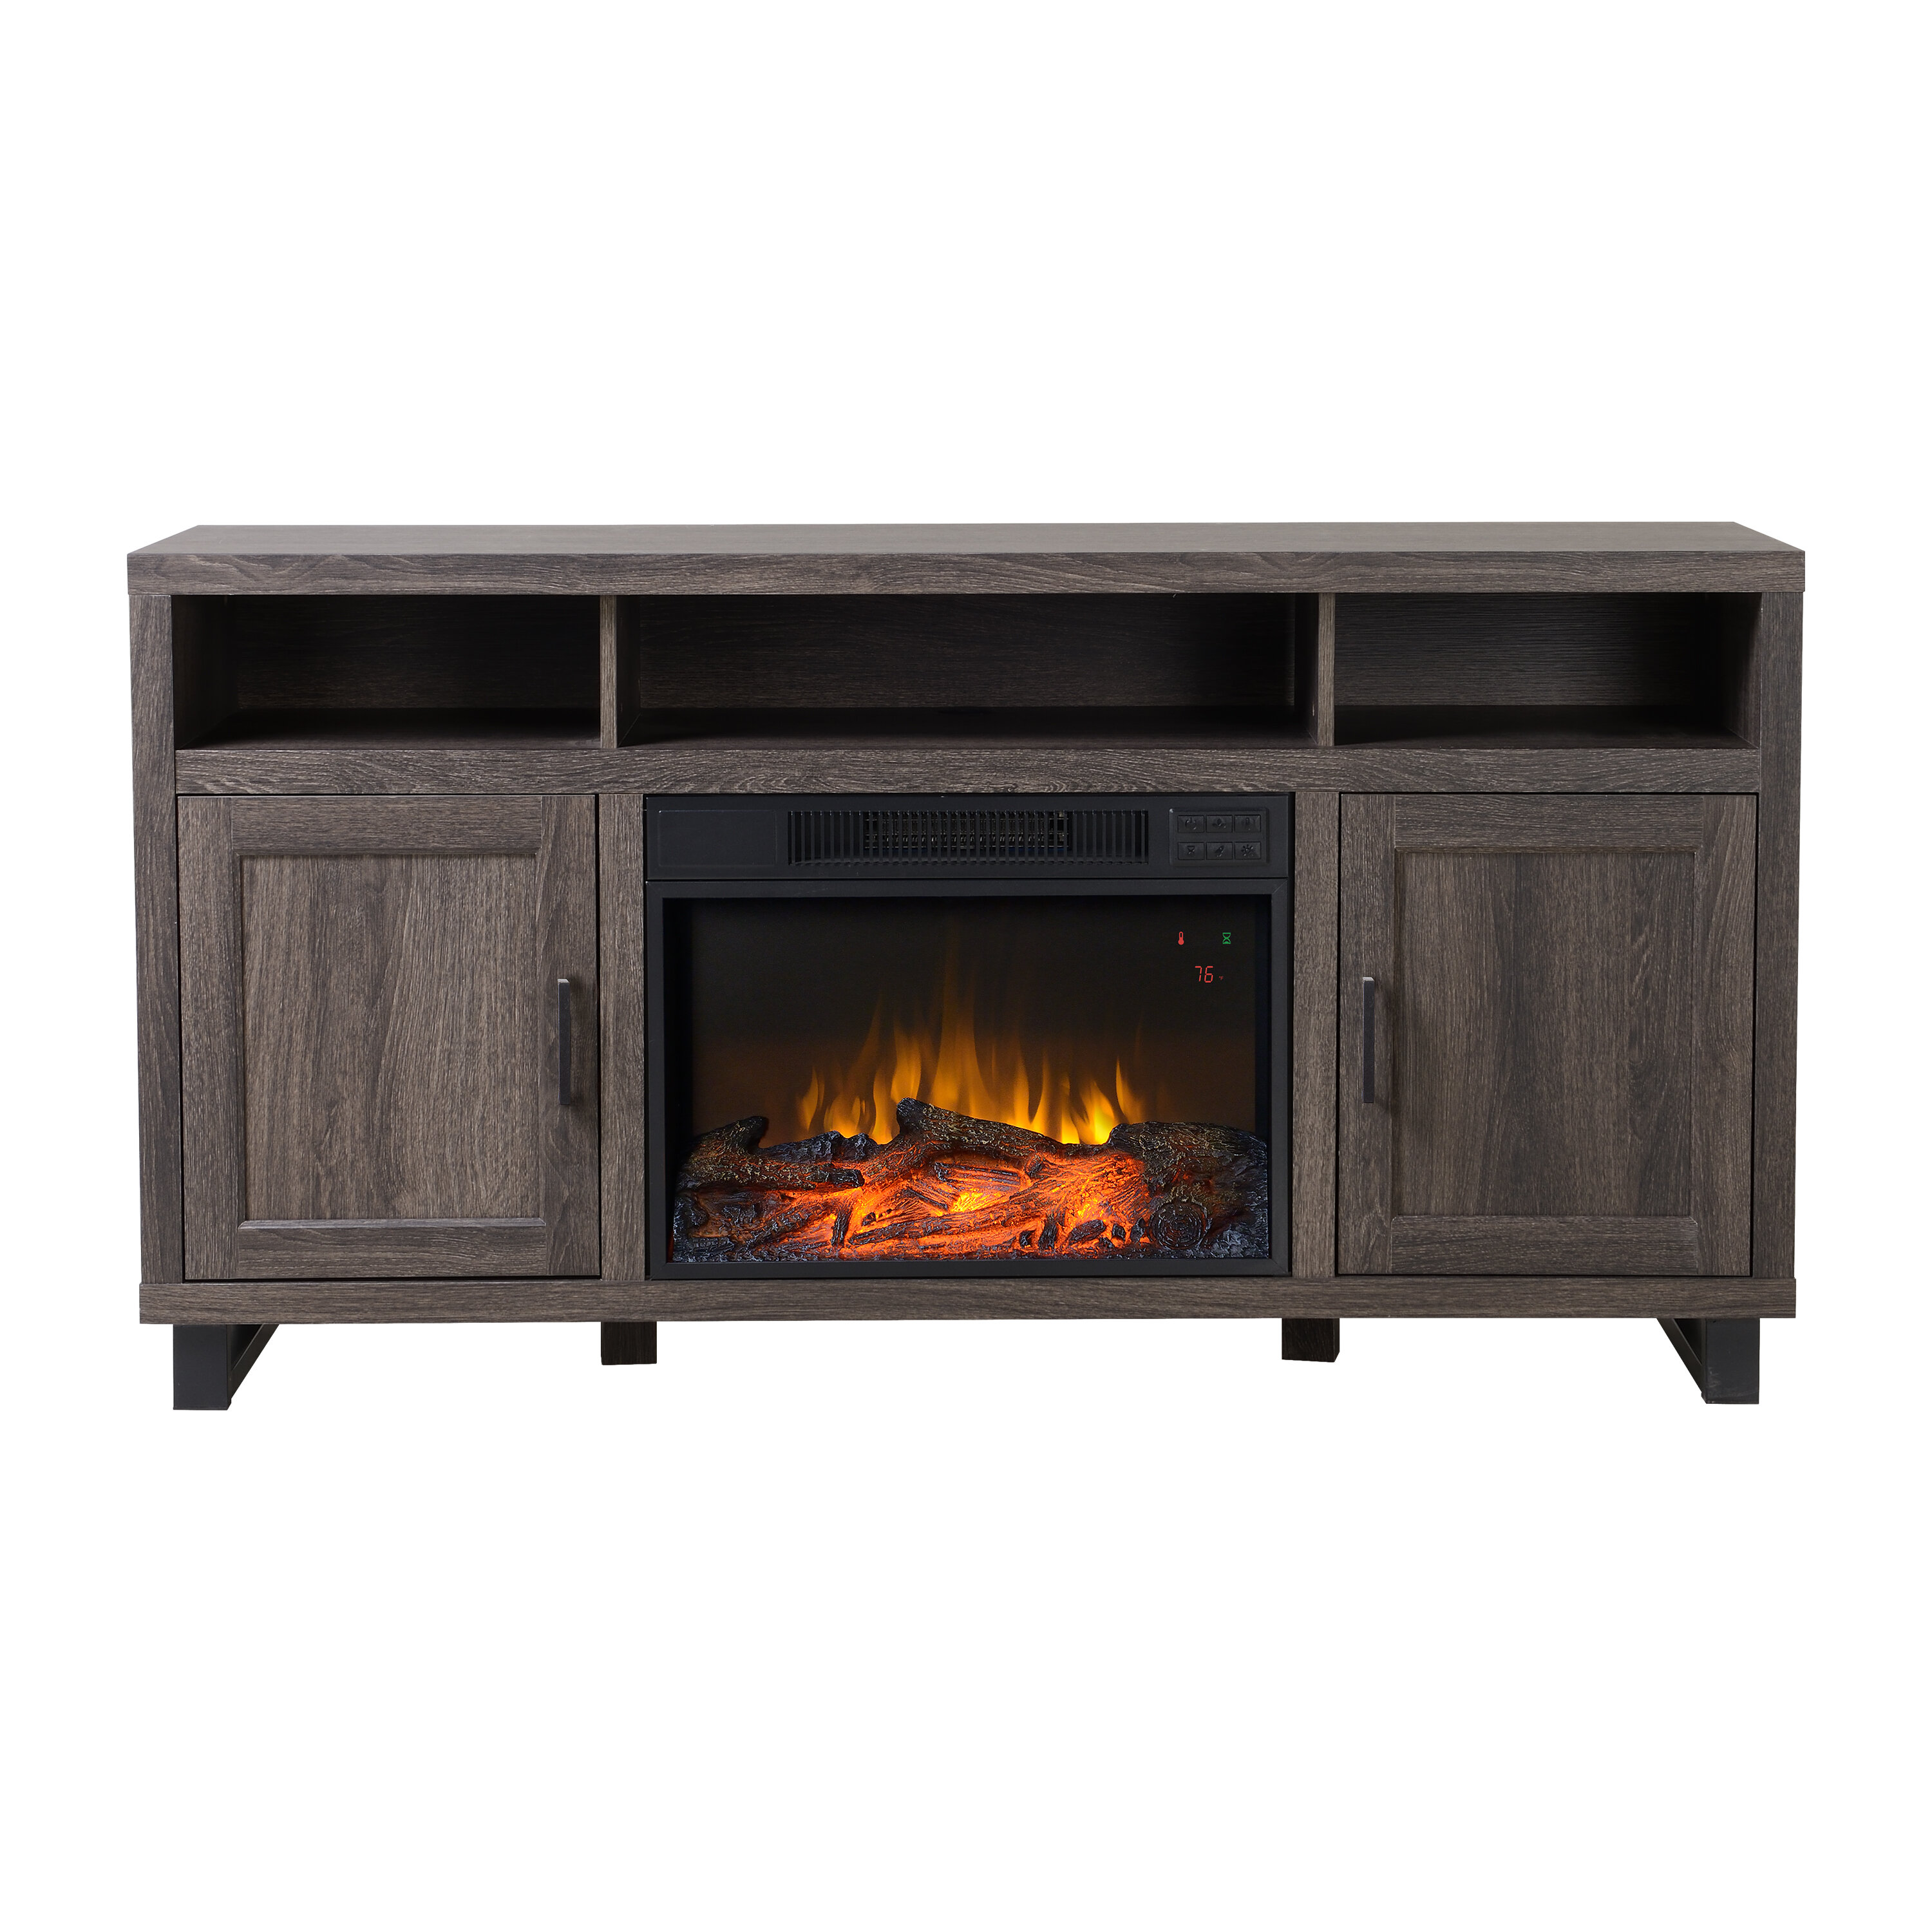 gracewood garden shipping blvd alessia harper hollow store overstock free fireplace electric black today home product ridge